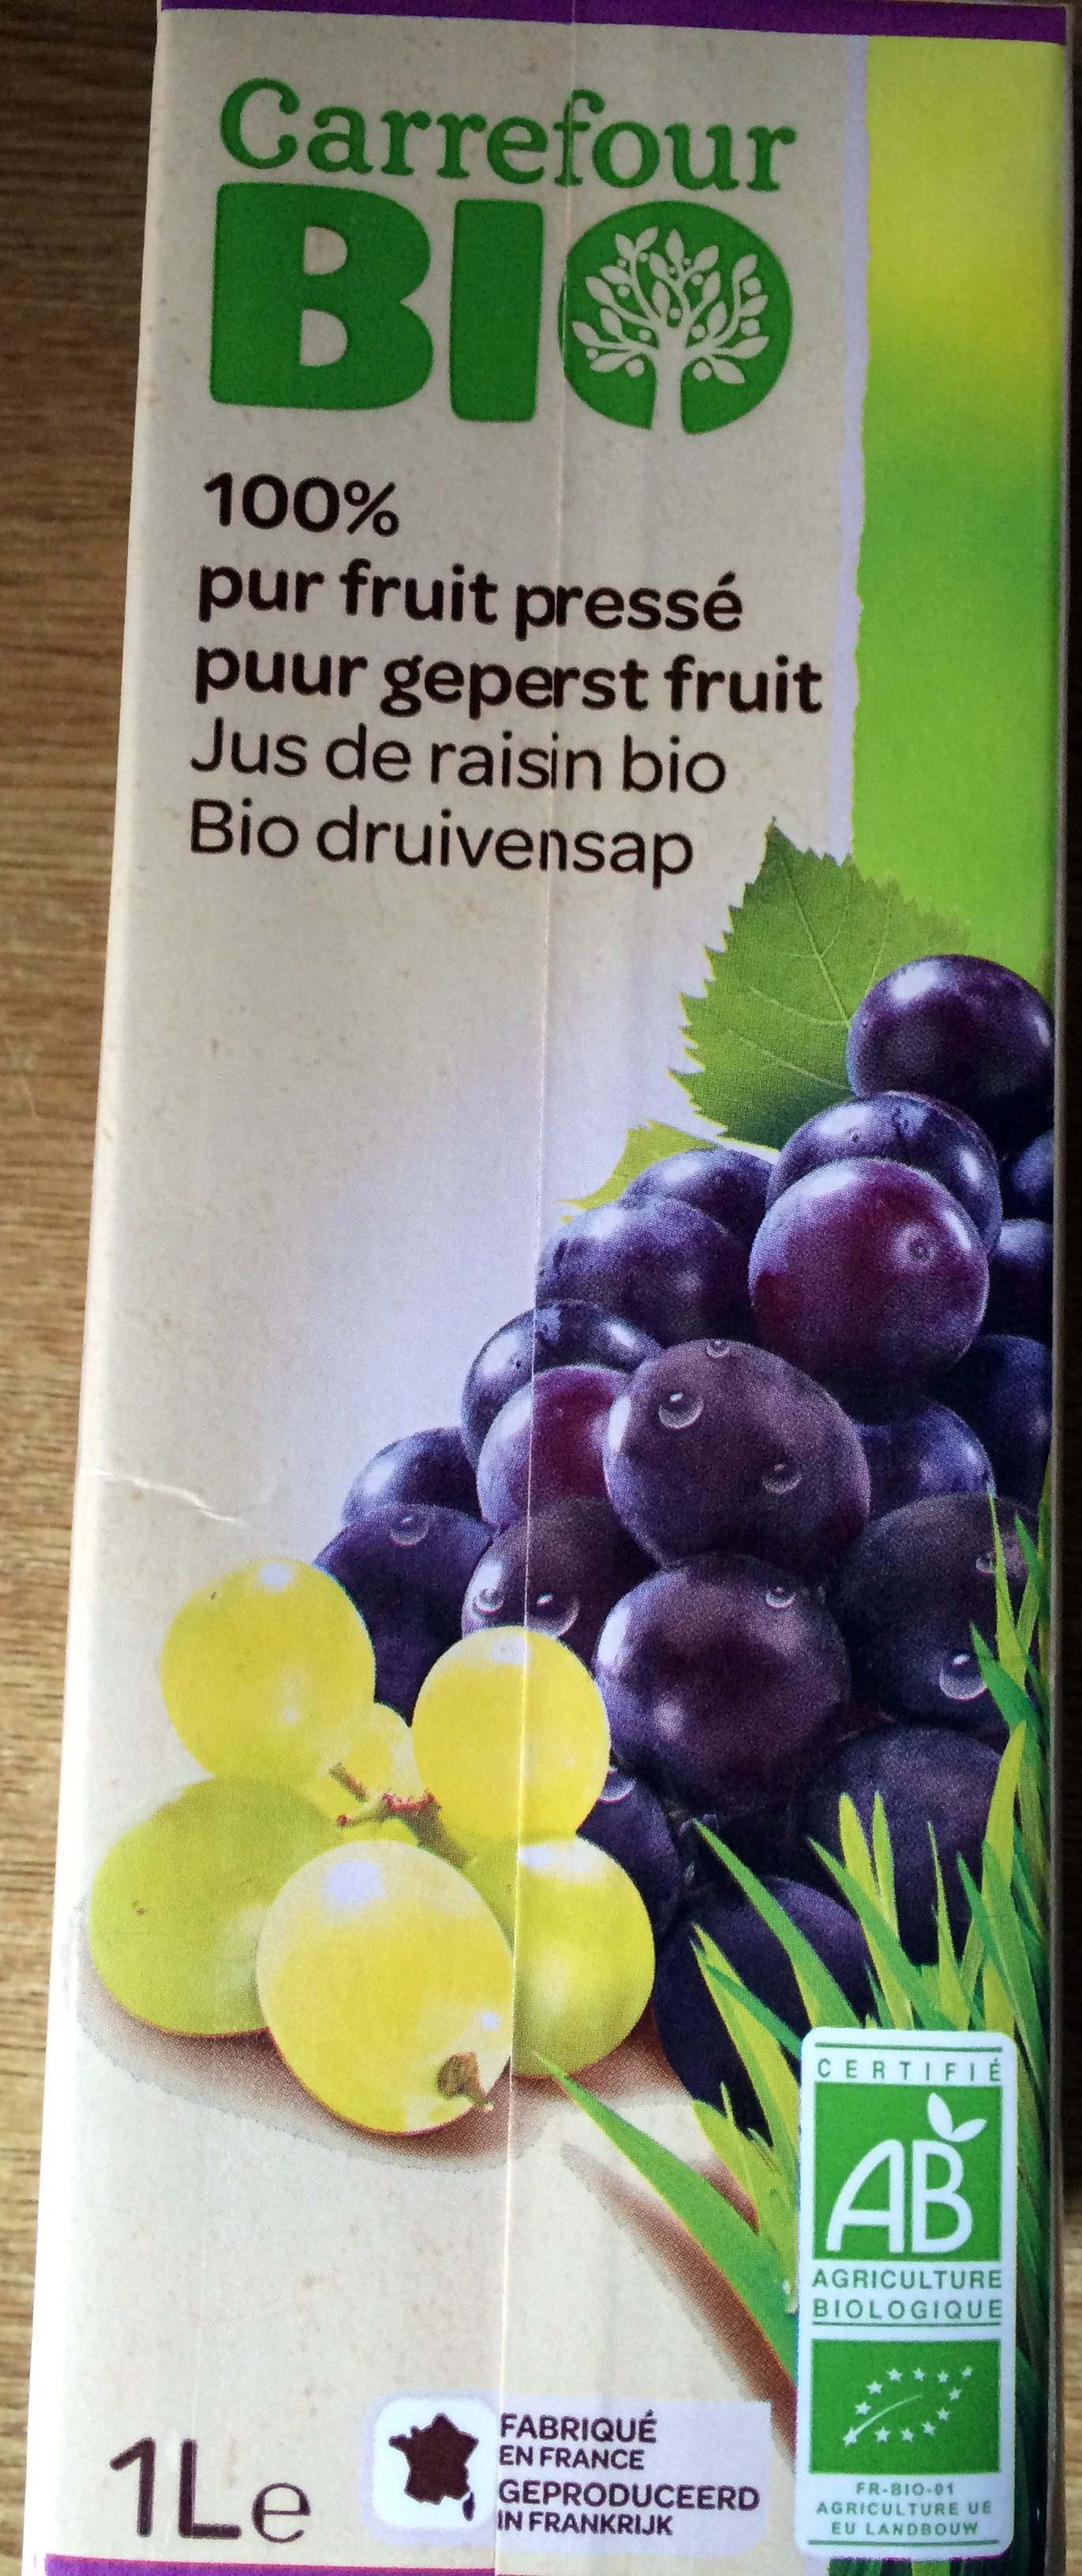 jus de raisin bio 100 pur fruit press carrefour 1 l. Black Bedroom Furniture Sets. Home Design Ideas